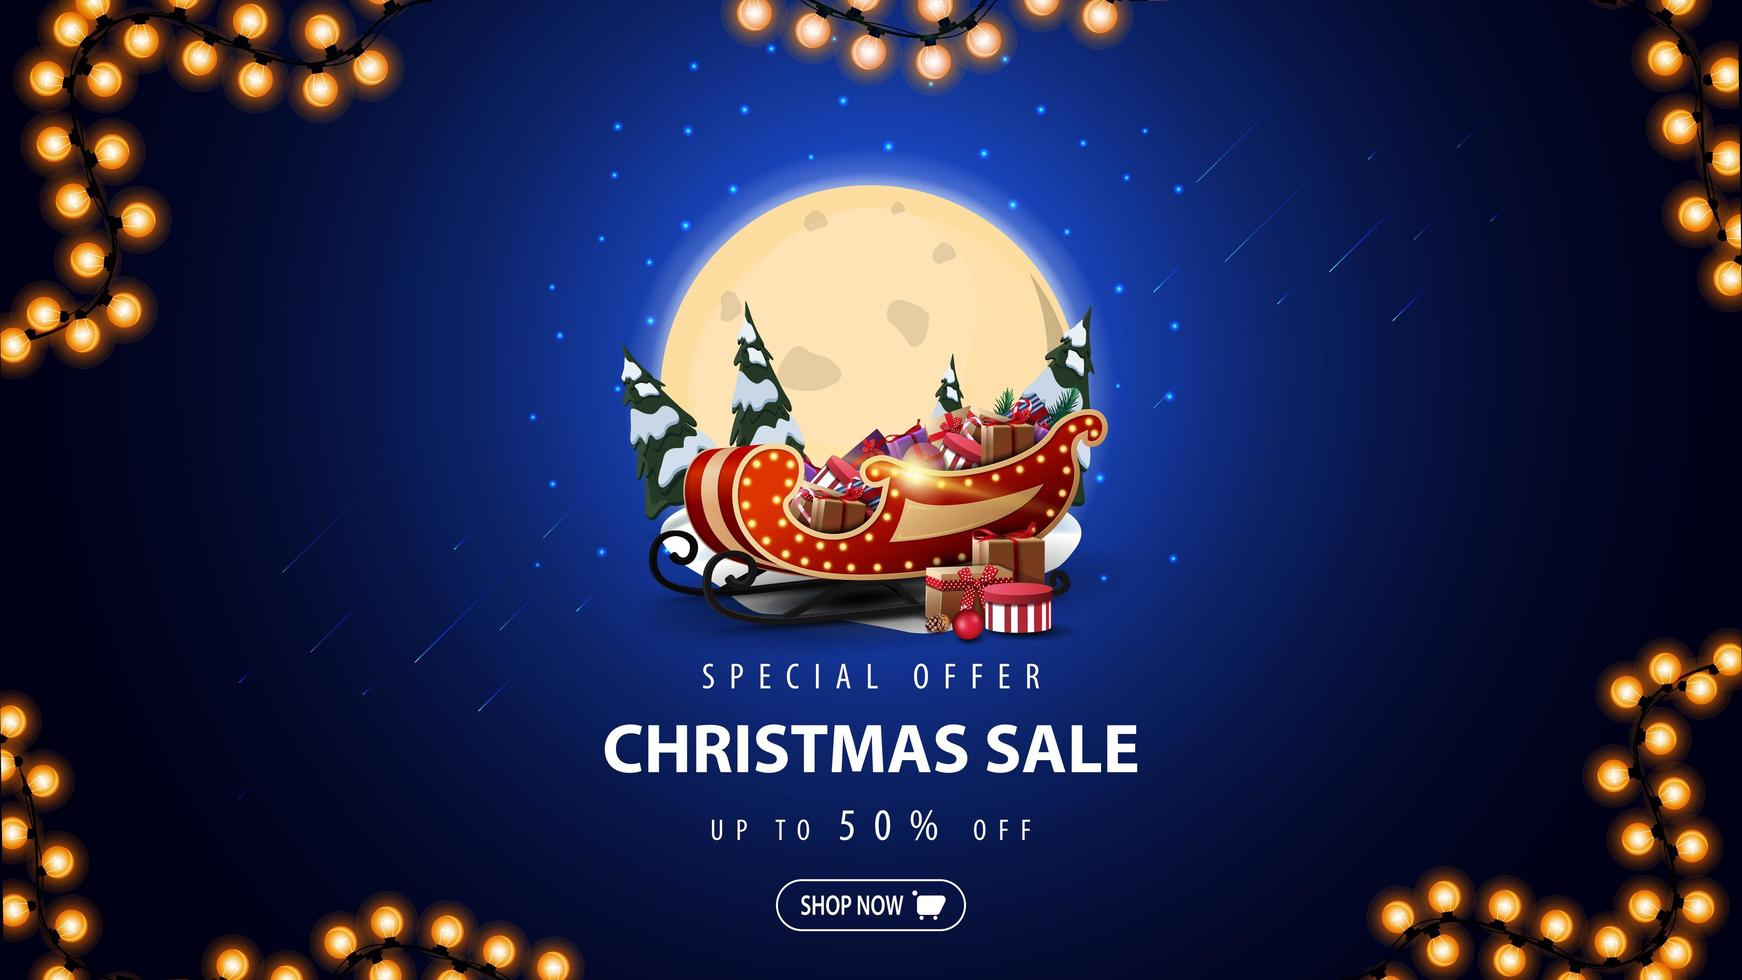 Special offer, Christmas sale, up to 50 off, blue discount banner with big full moon, snowdrifts, pines, starry sky and Santa Sleigh with presents vector